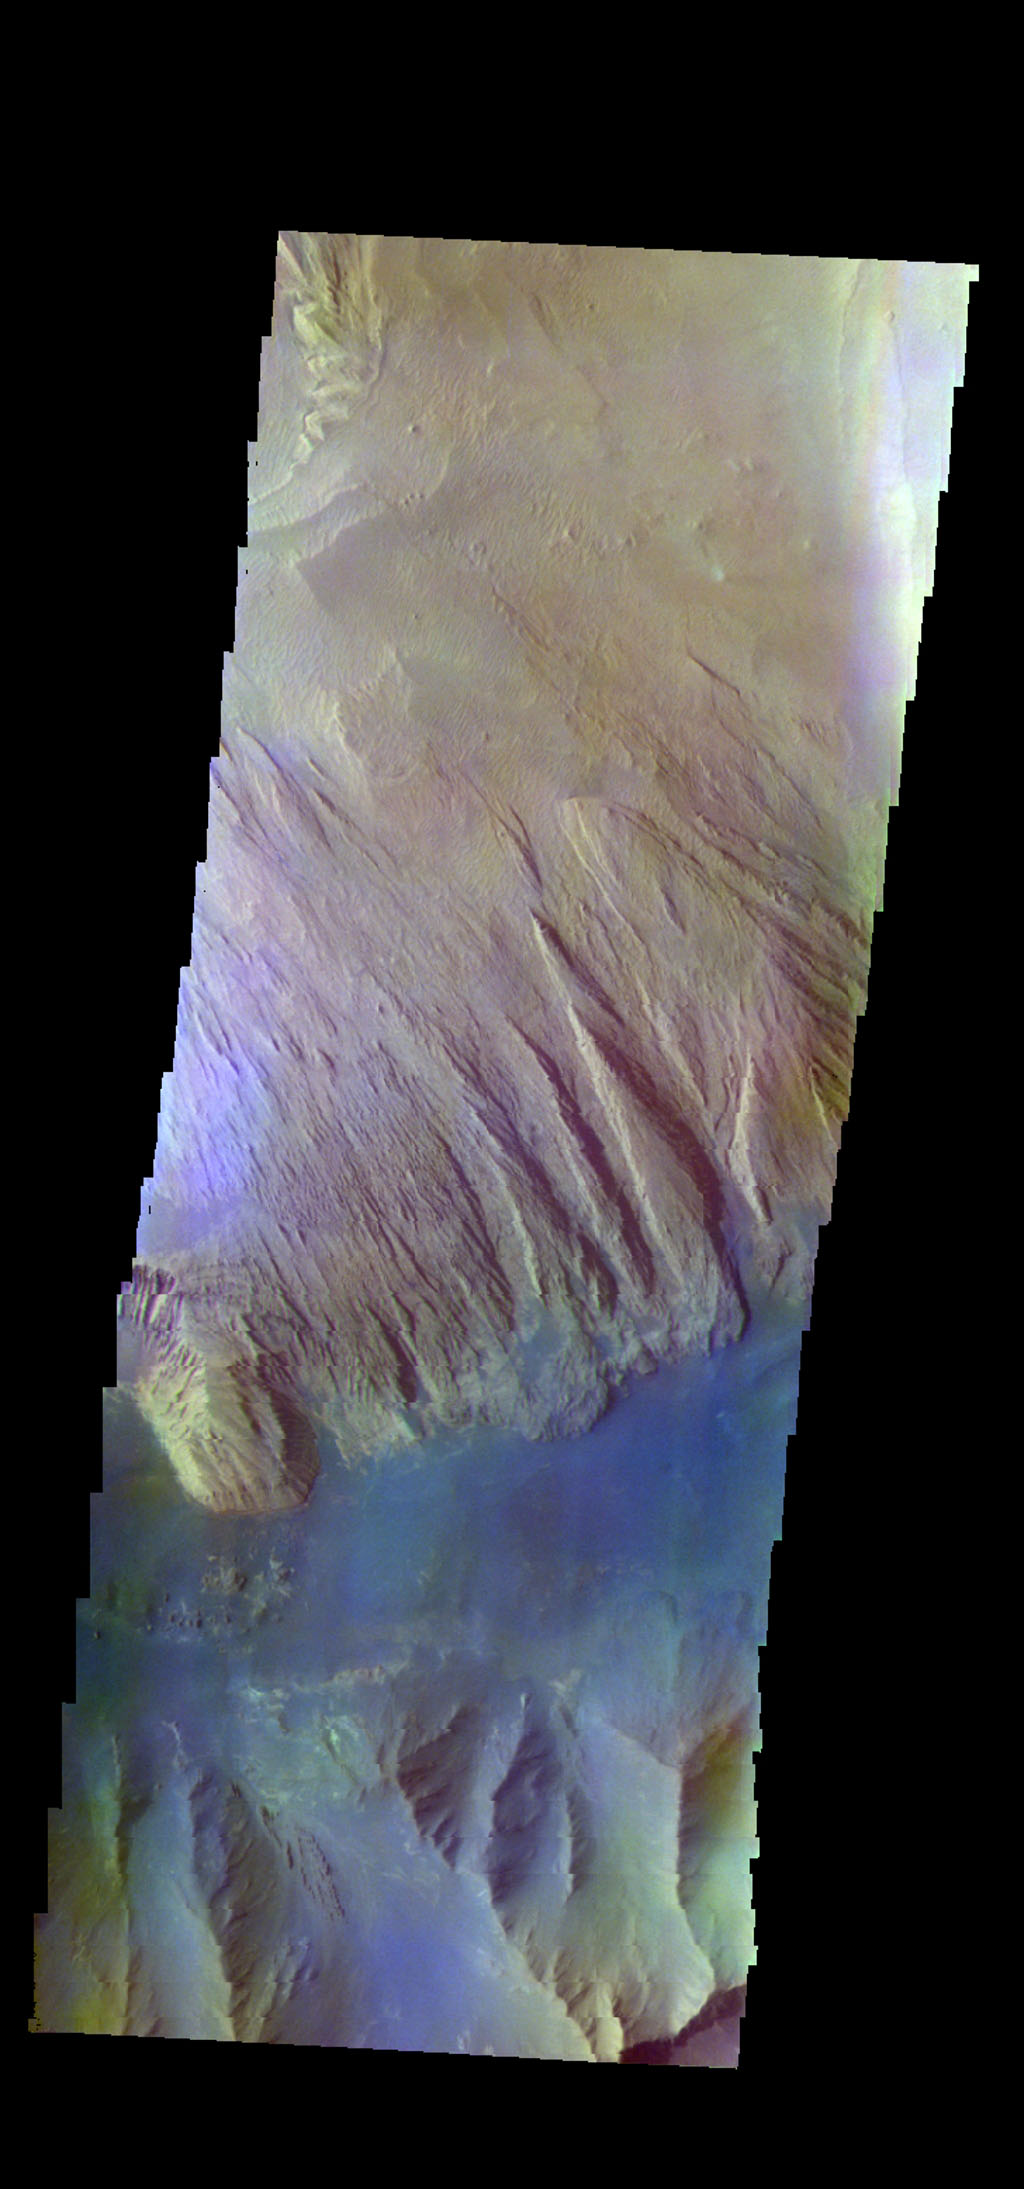 The THEMIS camera contains 5 filters. The data from different filters can be combined in multiple ways to create a false color image. This image from NASA's 2001 Mars Odyssey spacecraft shows part of Ophir Chasma.